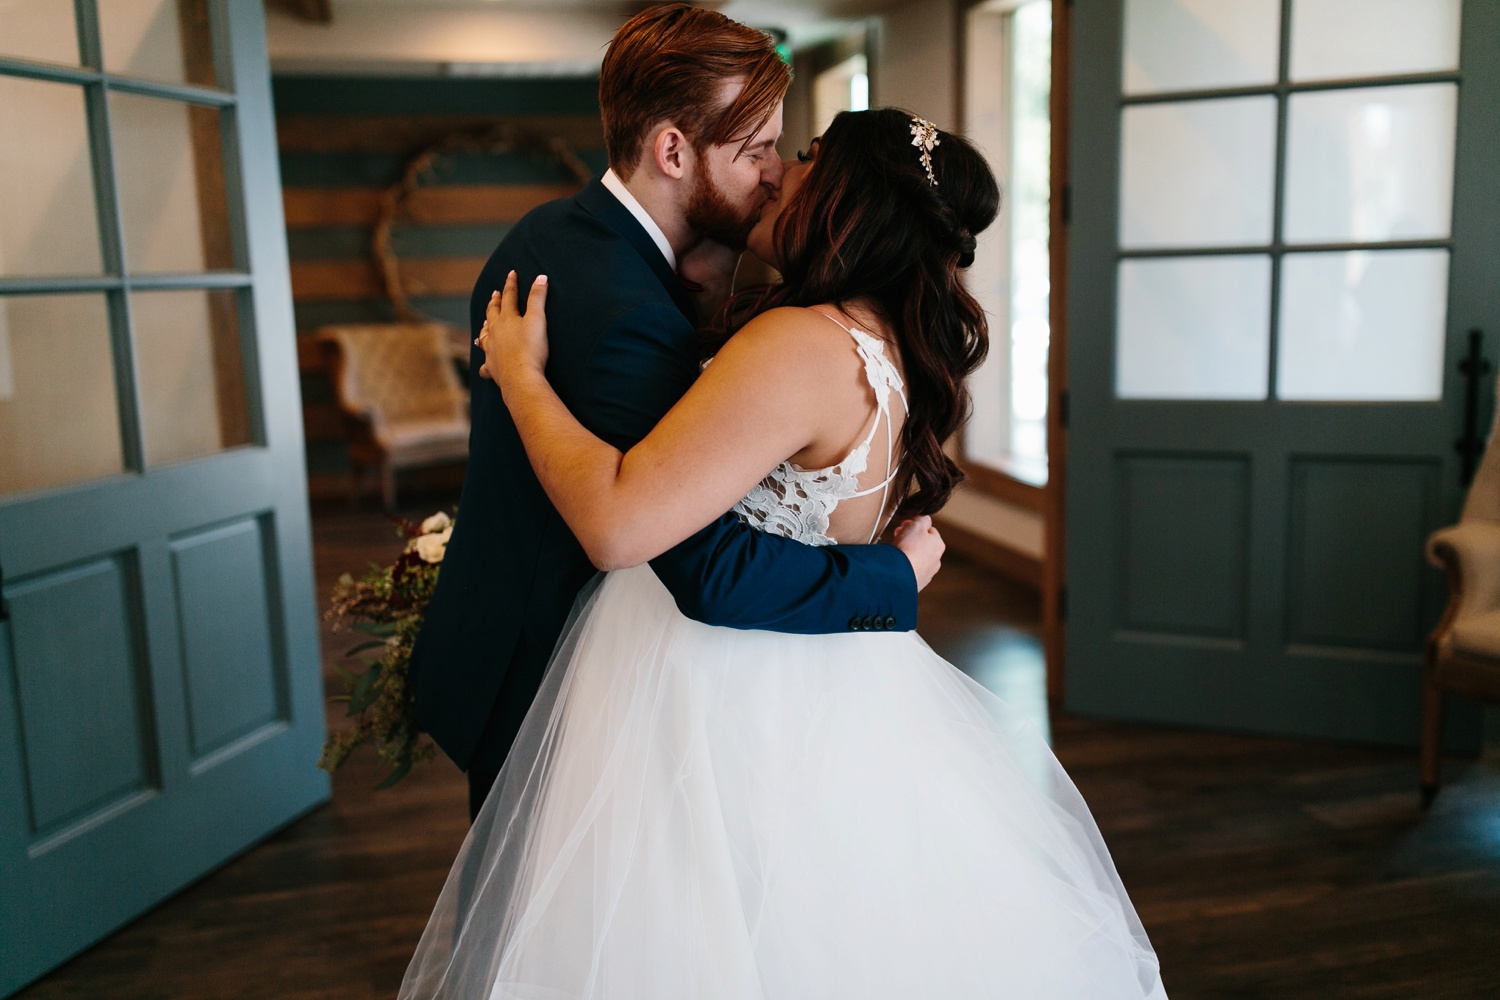 Grant + Lysette | a vibrant, deep burgundy and navy, and mixed metals wedding at Hidden Pines Chapel by North Texas Wedding Photographer Rachel Meagan Photography 129